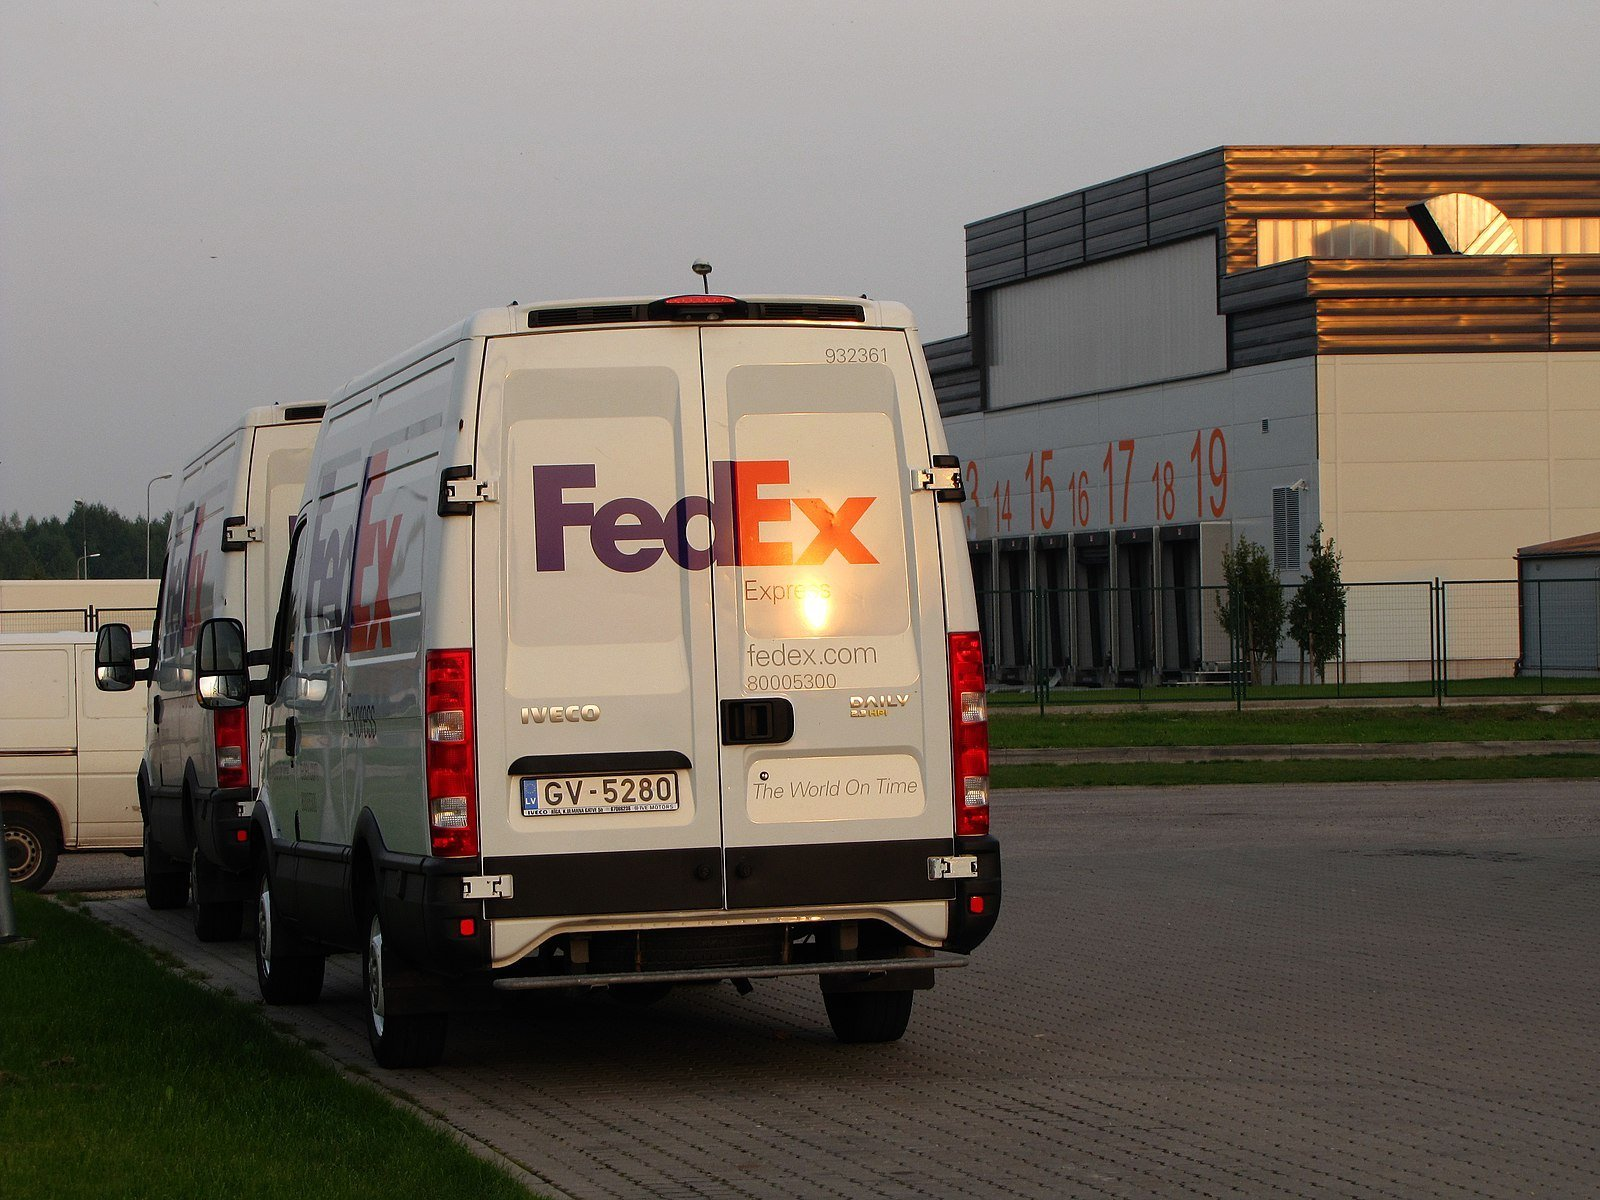 Listen: 8 Dead In Shooting At Indianapolis Fed-Ex Facility